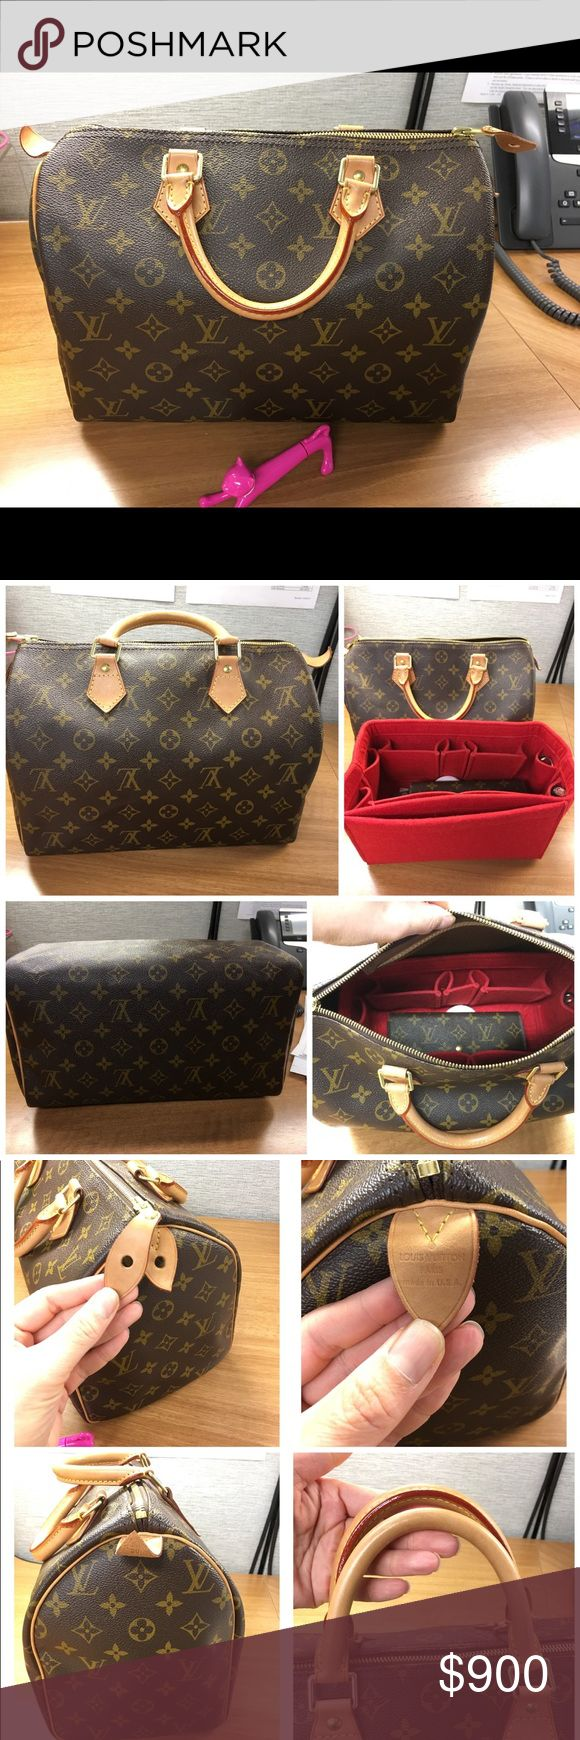 !!!SOLD!!! 💯Authentic Louis Vuitton Speedy 30 💕 Authentic Like NEW LV Speedy 30! No Marks. No Stains. No Scuffs. Clean Inside. Clean Outside. Keys, Lock, Dust Bag. Will Consider Offers. Louis Vuitton Bags Satchels